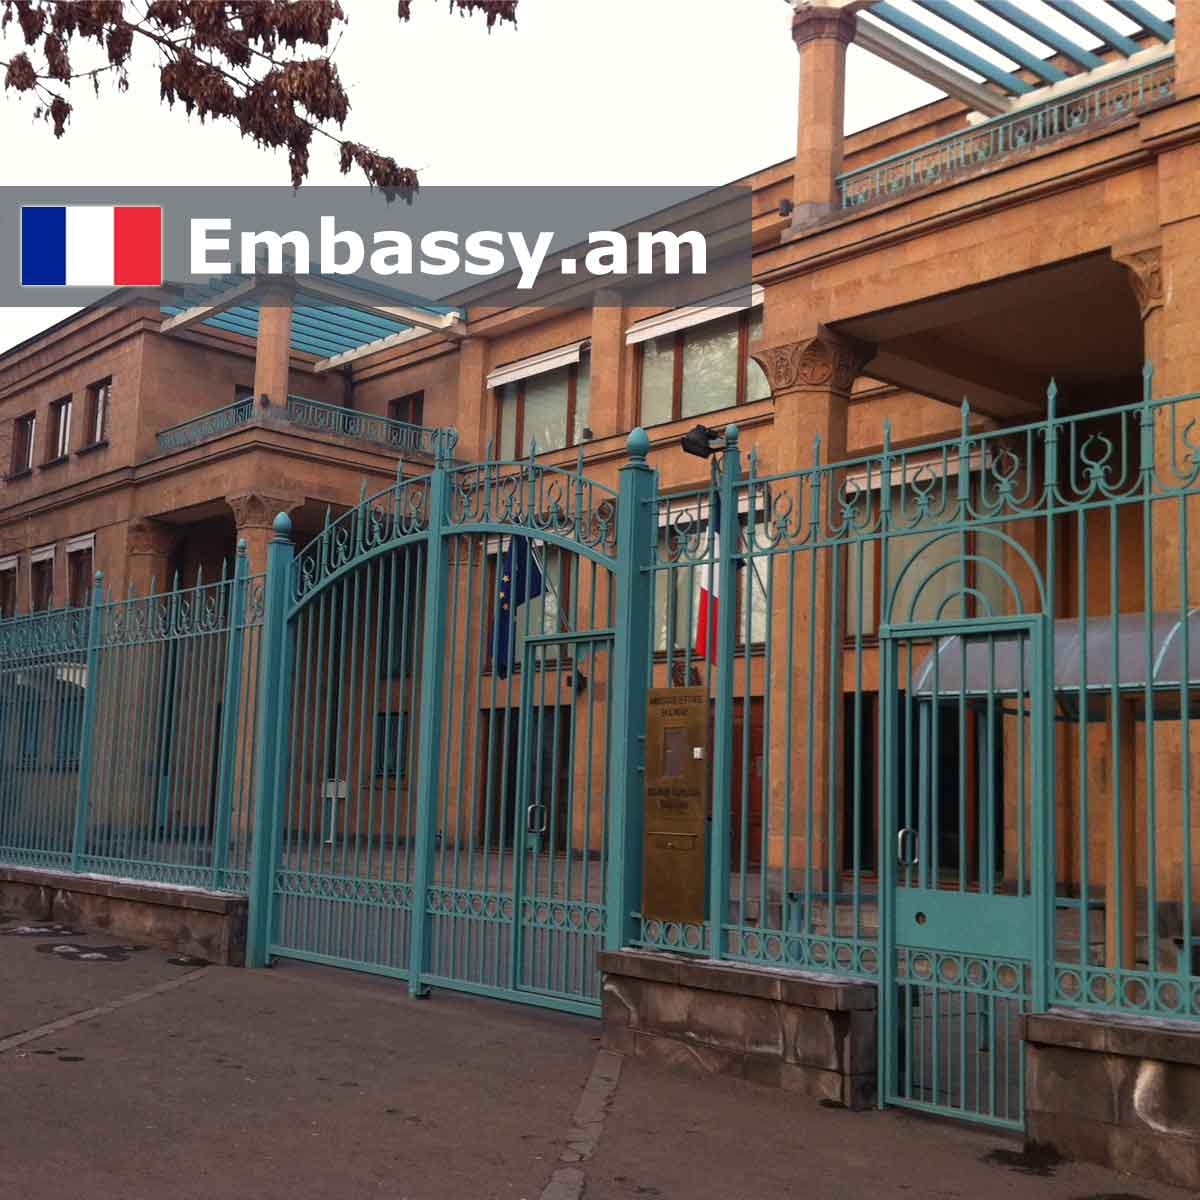 Embassy of the French Republic in Armenia - Embassy am